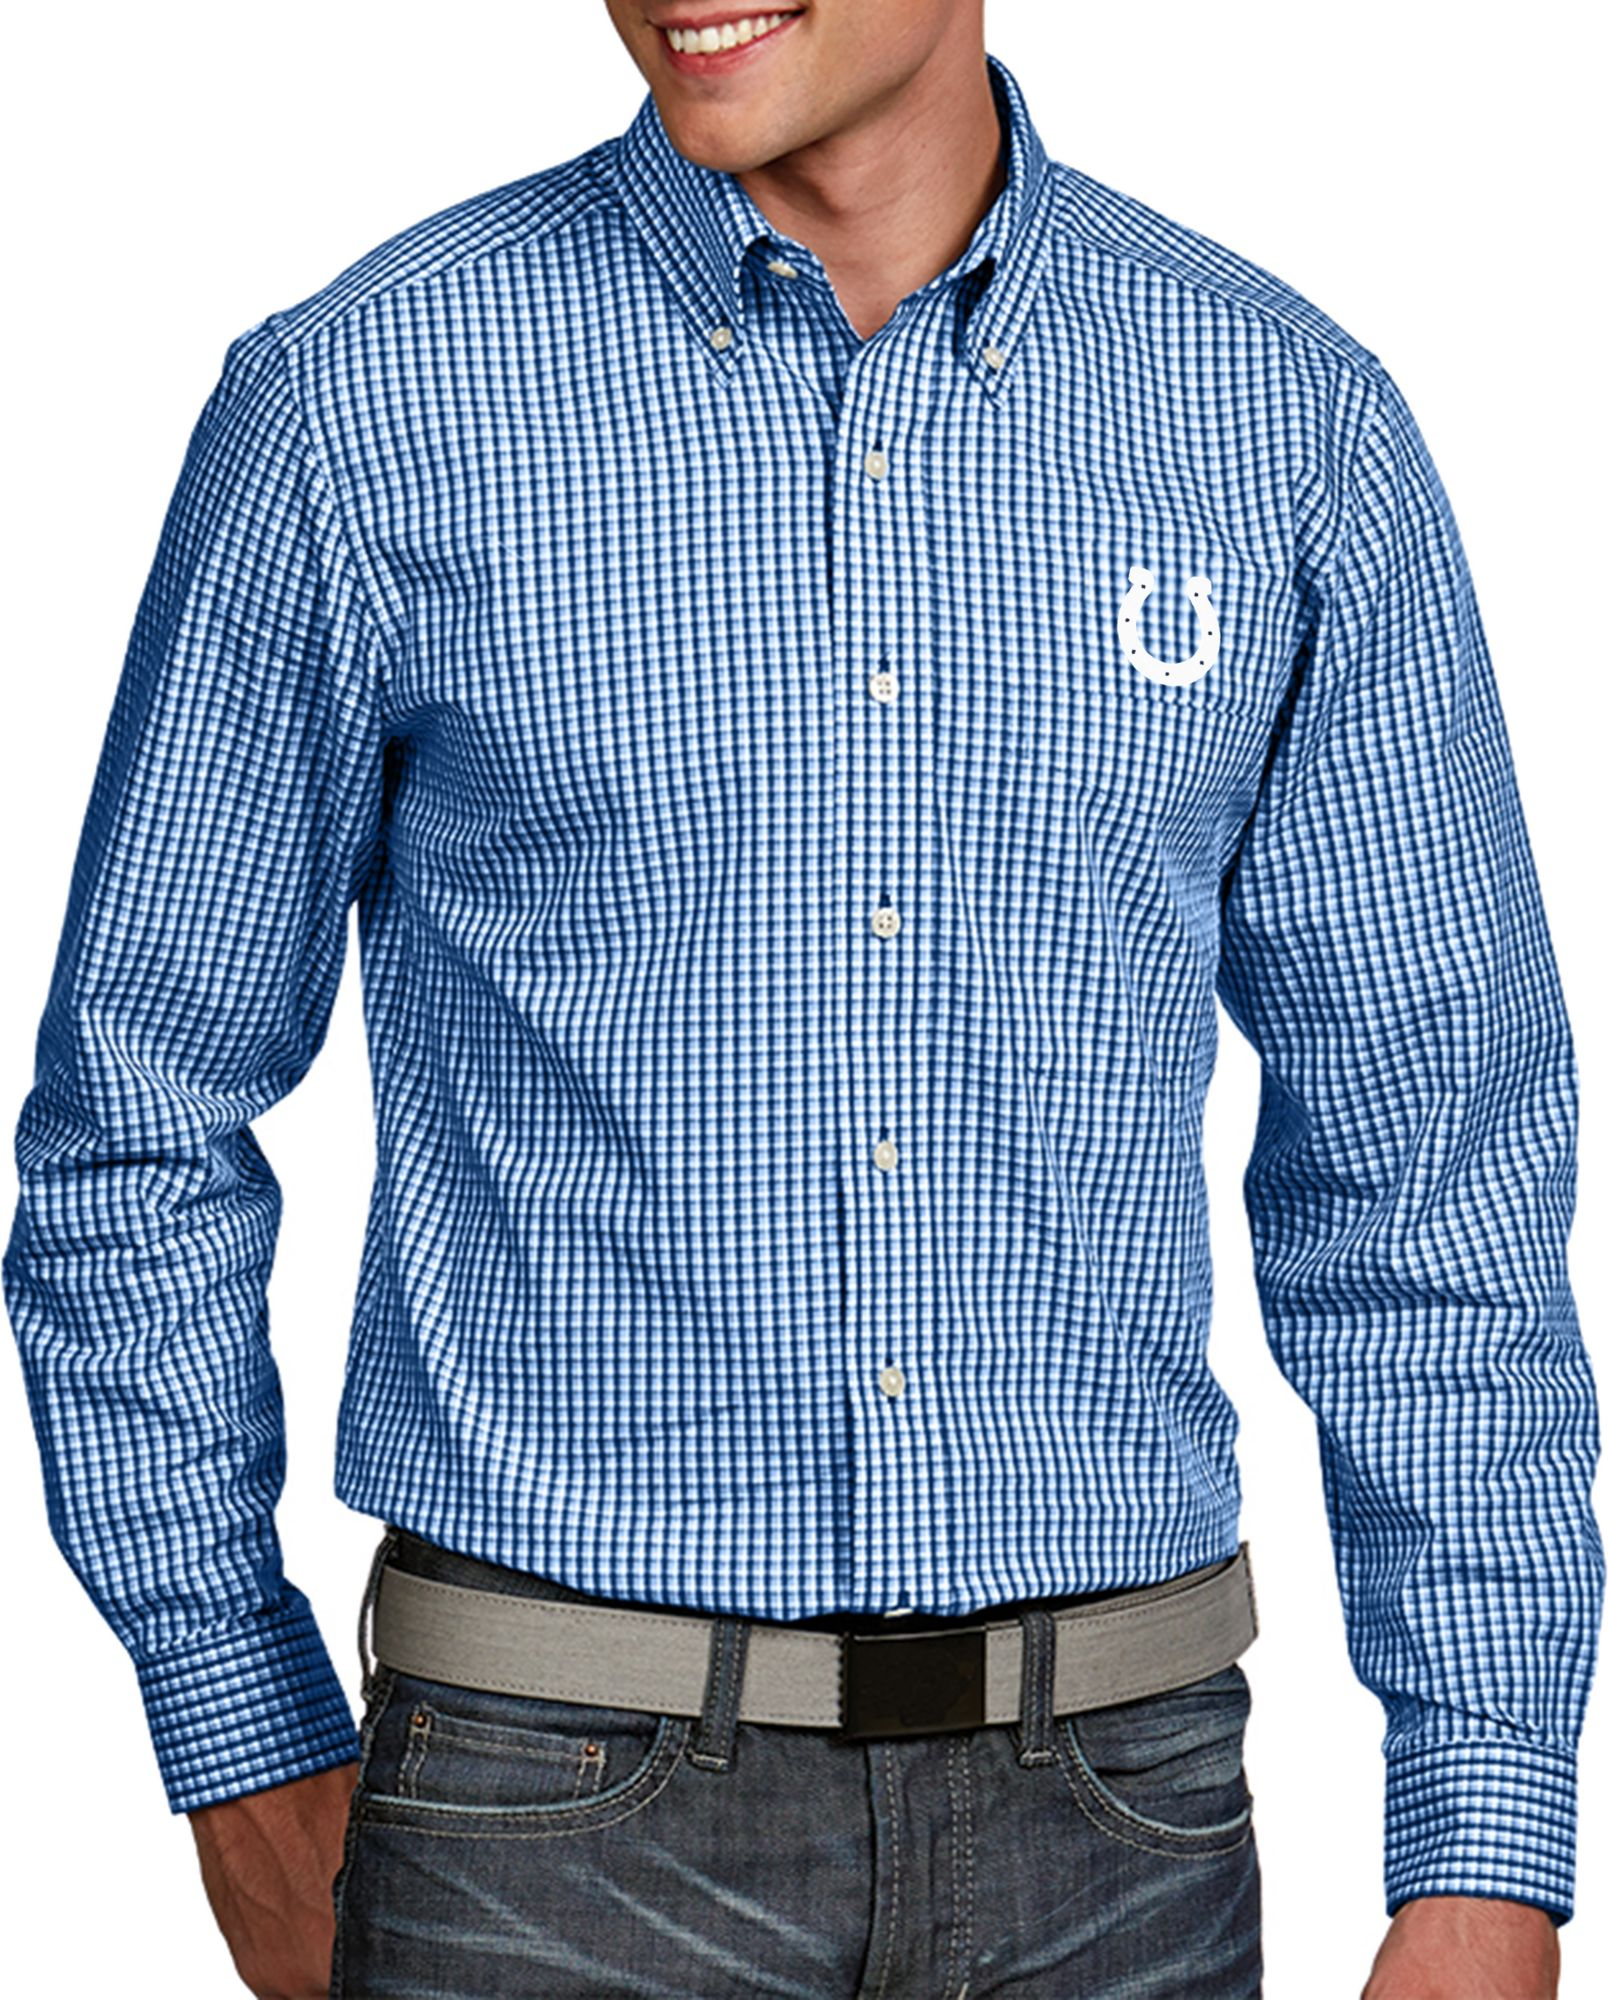 indianapolis colts dress shirt